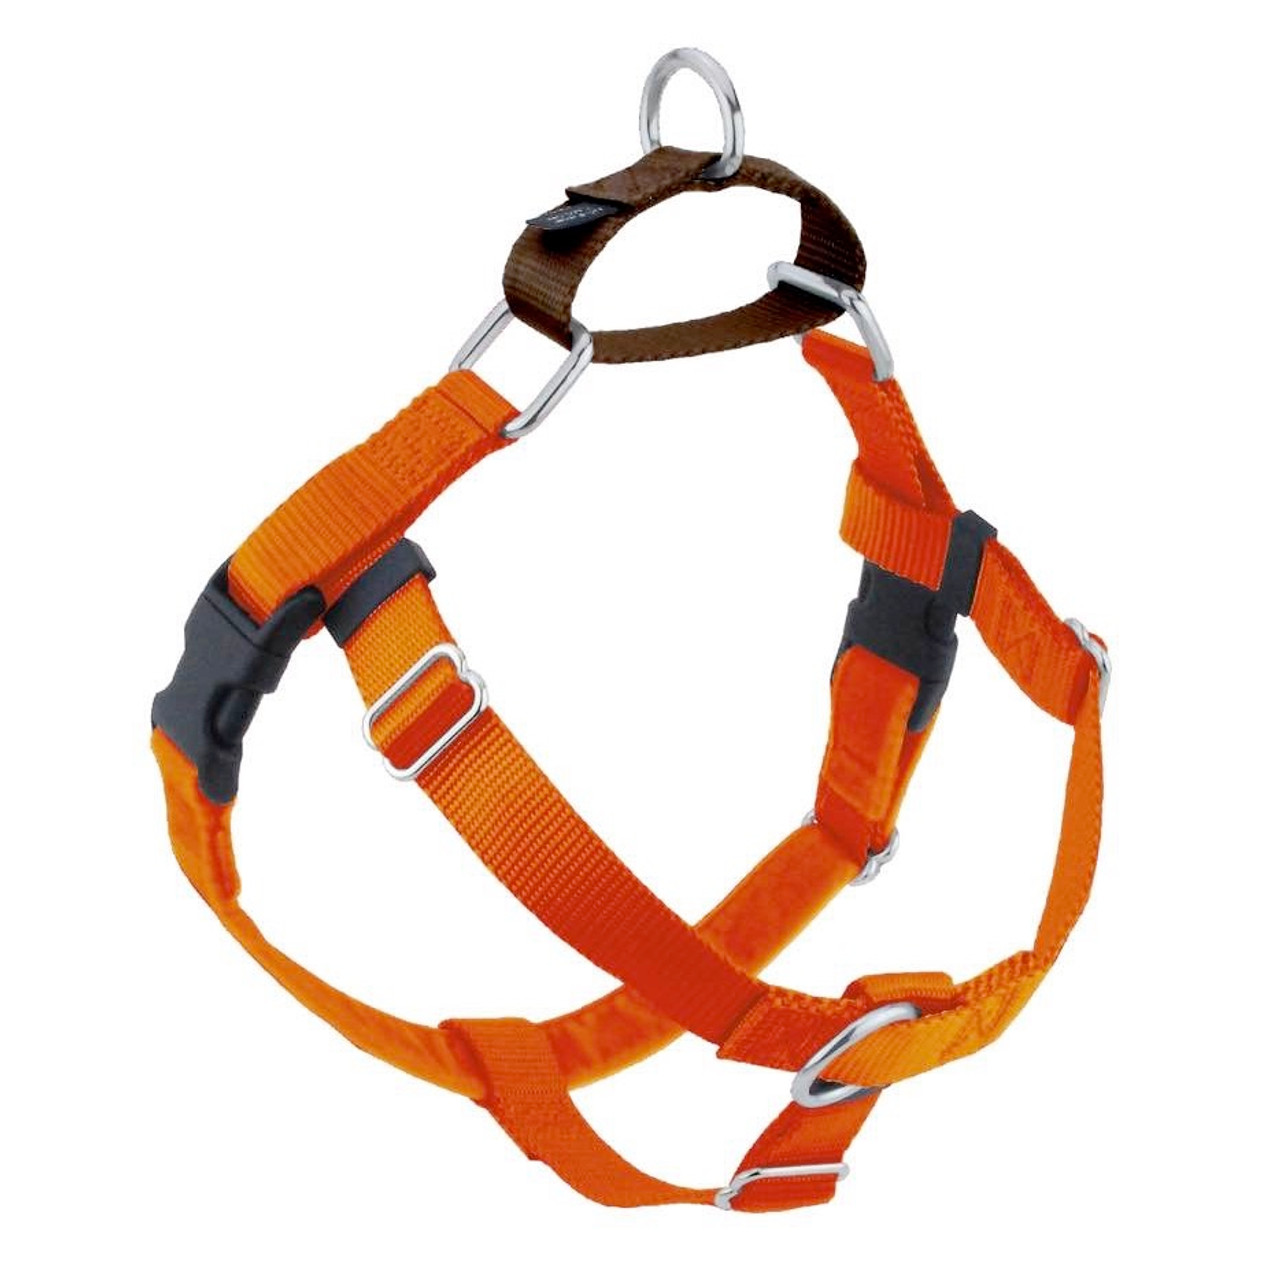 RustBrown Freedom_Harness__89286.1546392931?c=2?imbypass=on rust freedom no pull dog harness & optional leads 2 hounds at puprwear